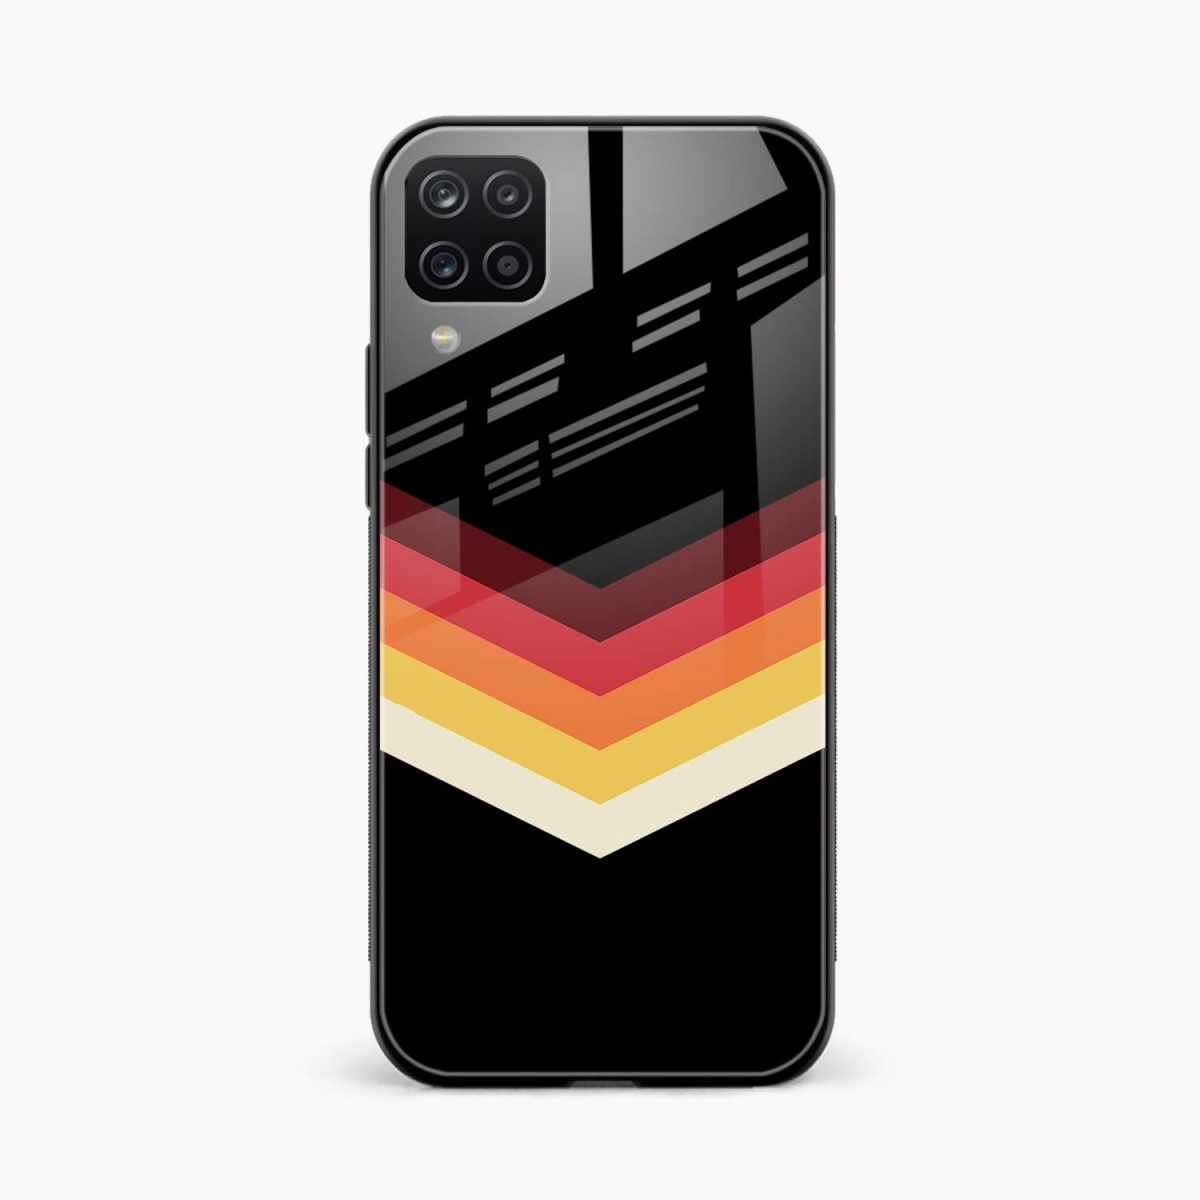 rewind strips pattern front view samsung galaxy a12 back cover